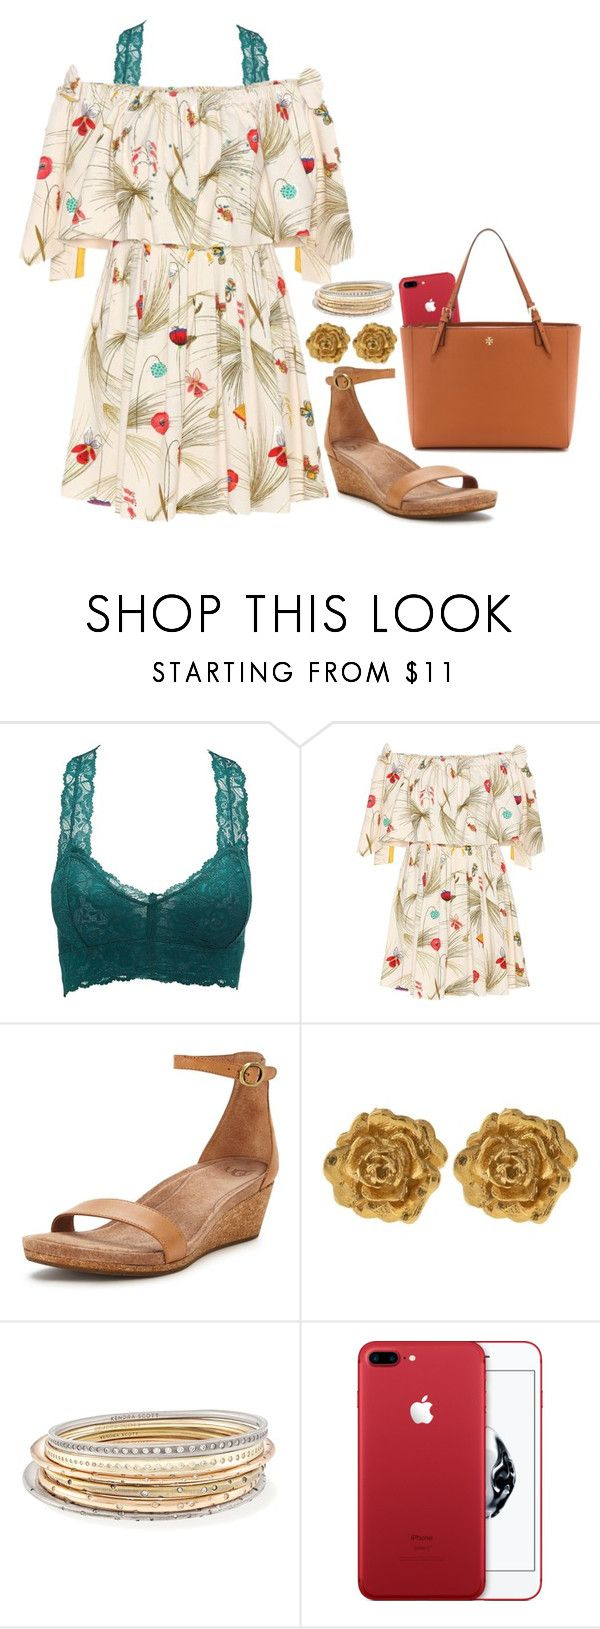 """""""got a prom date y'all """" by legitimately-kierstin ❤ liked on Polyvore featuring Charlotte Russe, Fendi, UGG, Liberty, Kendra Scott and Tory Burch"""